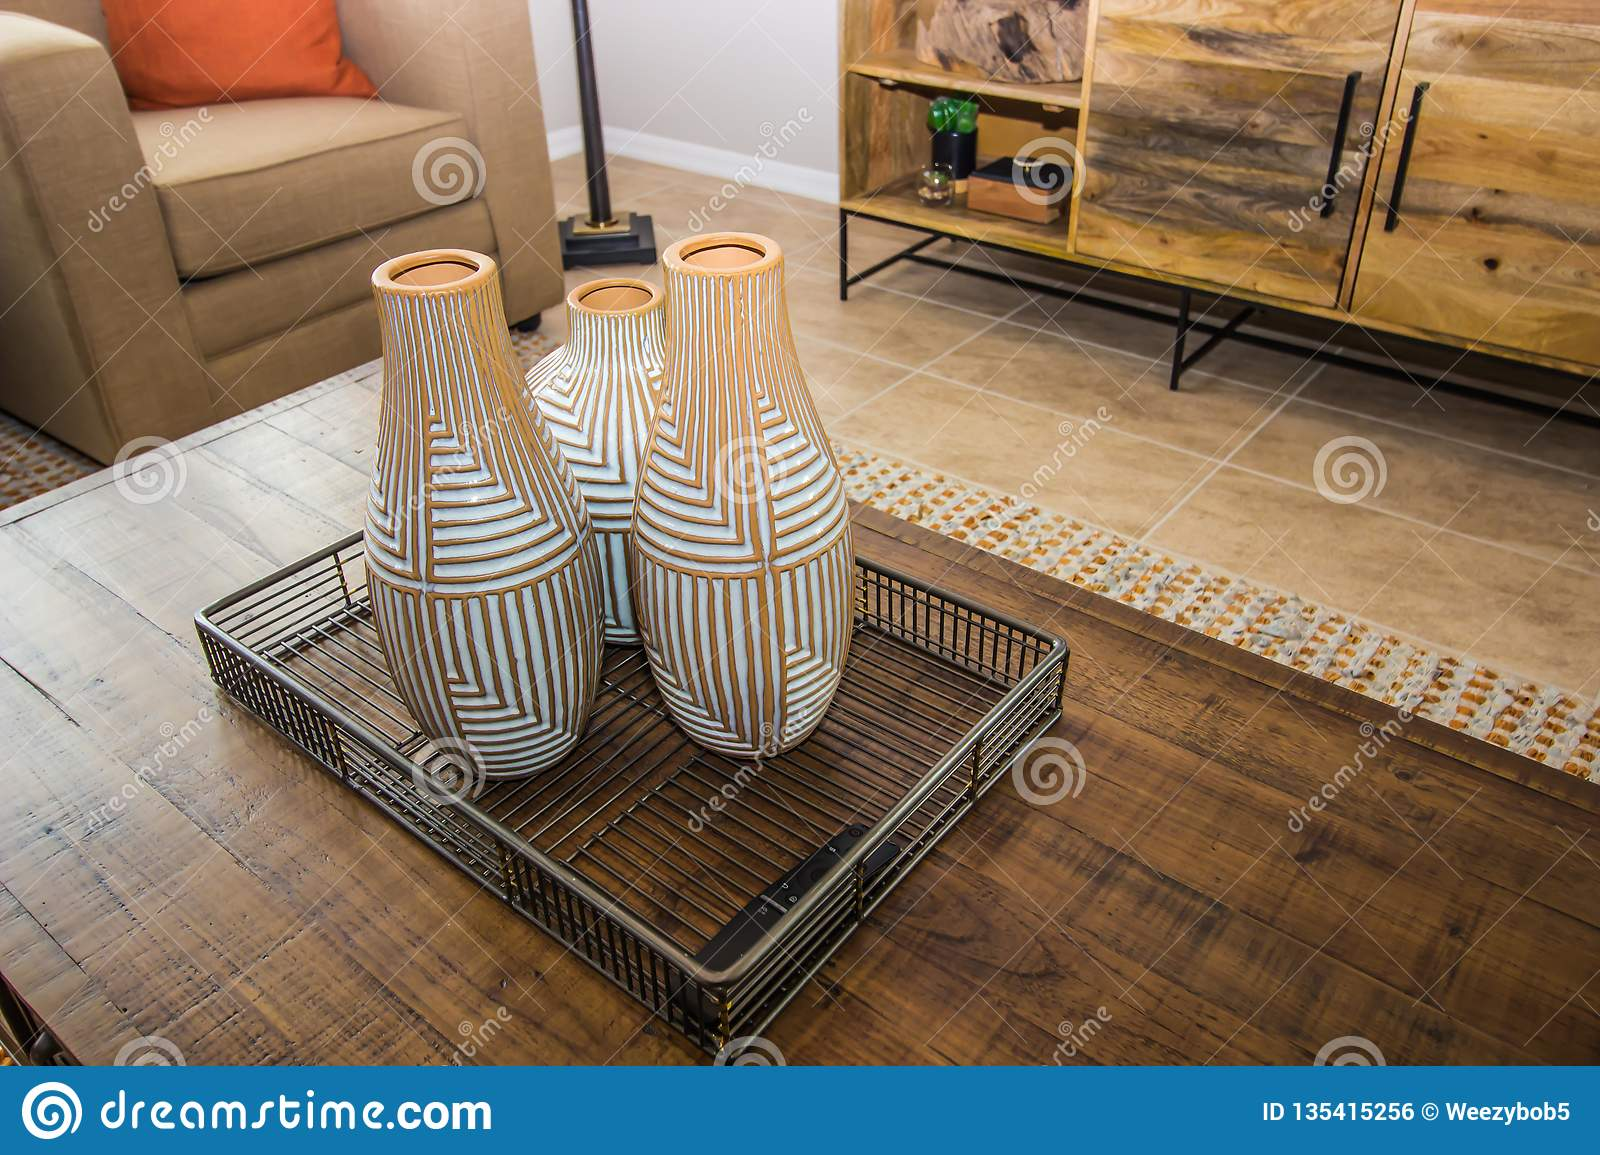 Decorative Vases On Coffee Table Stock Photo - Image of ...